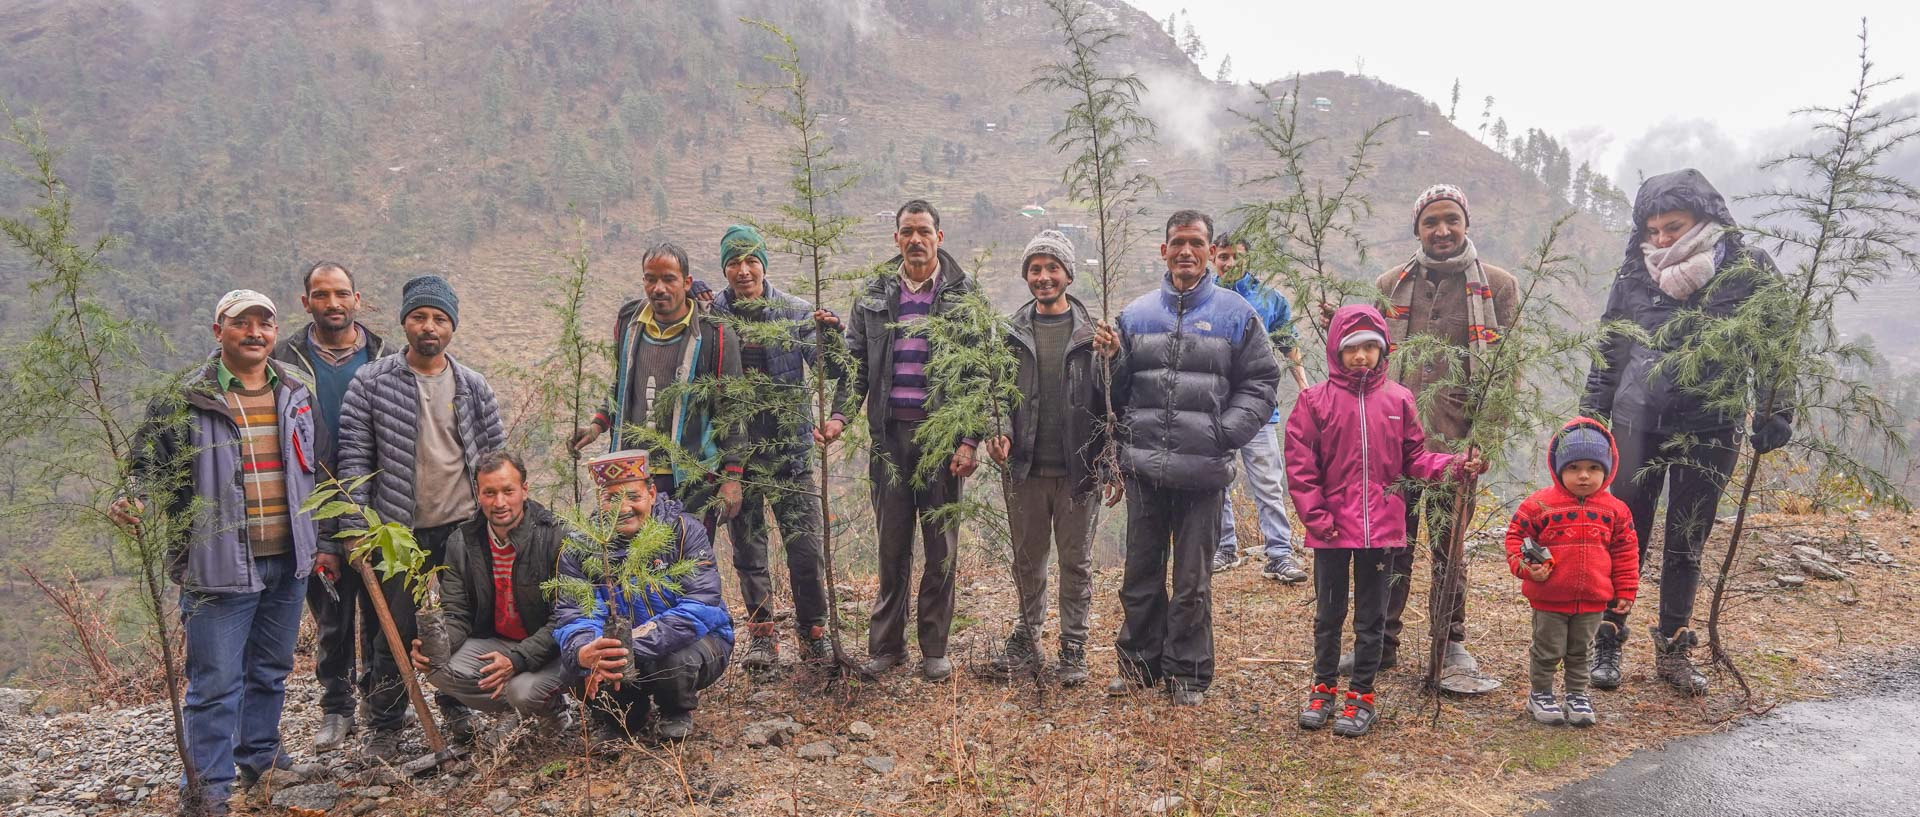 Plant trees with us in the Himalayas